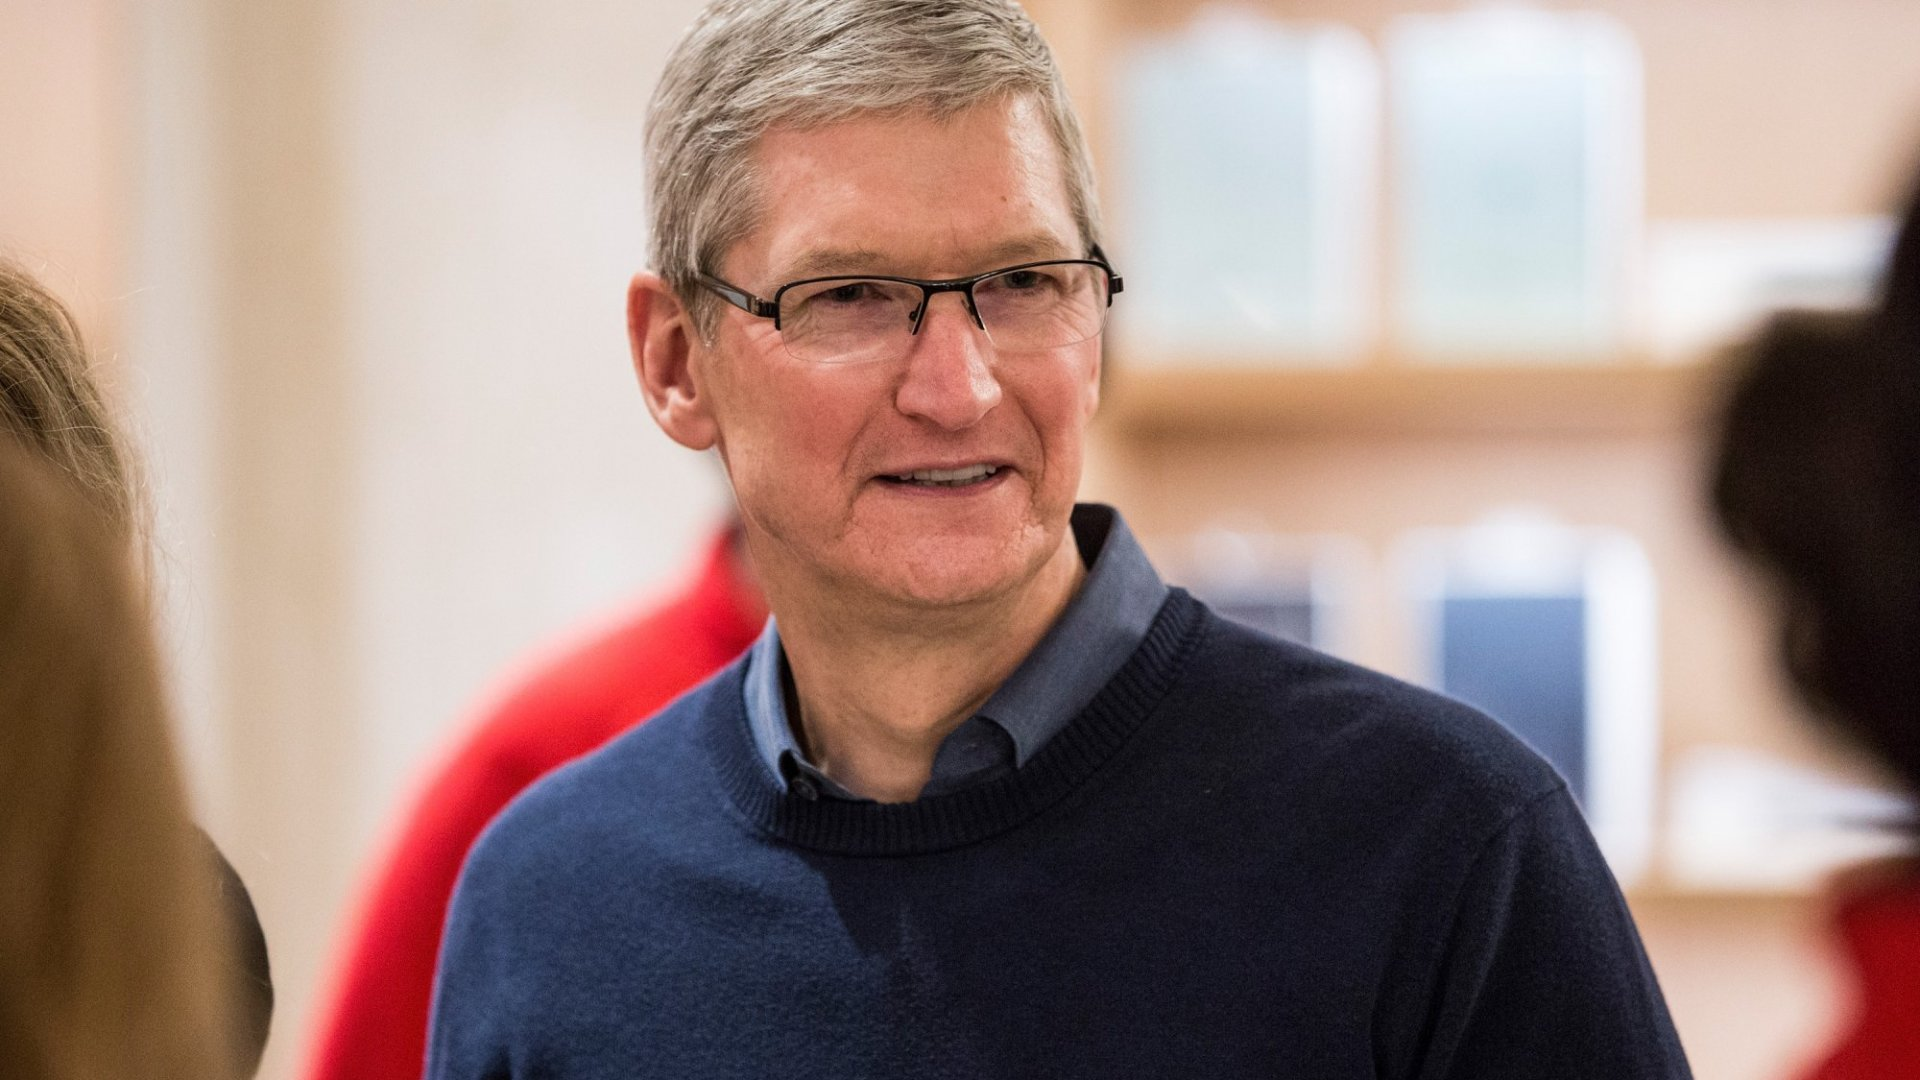 YOu might see Tim Cook on C-SPAN